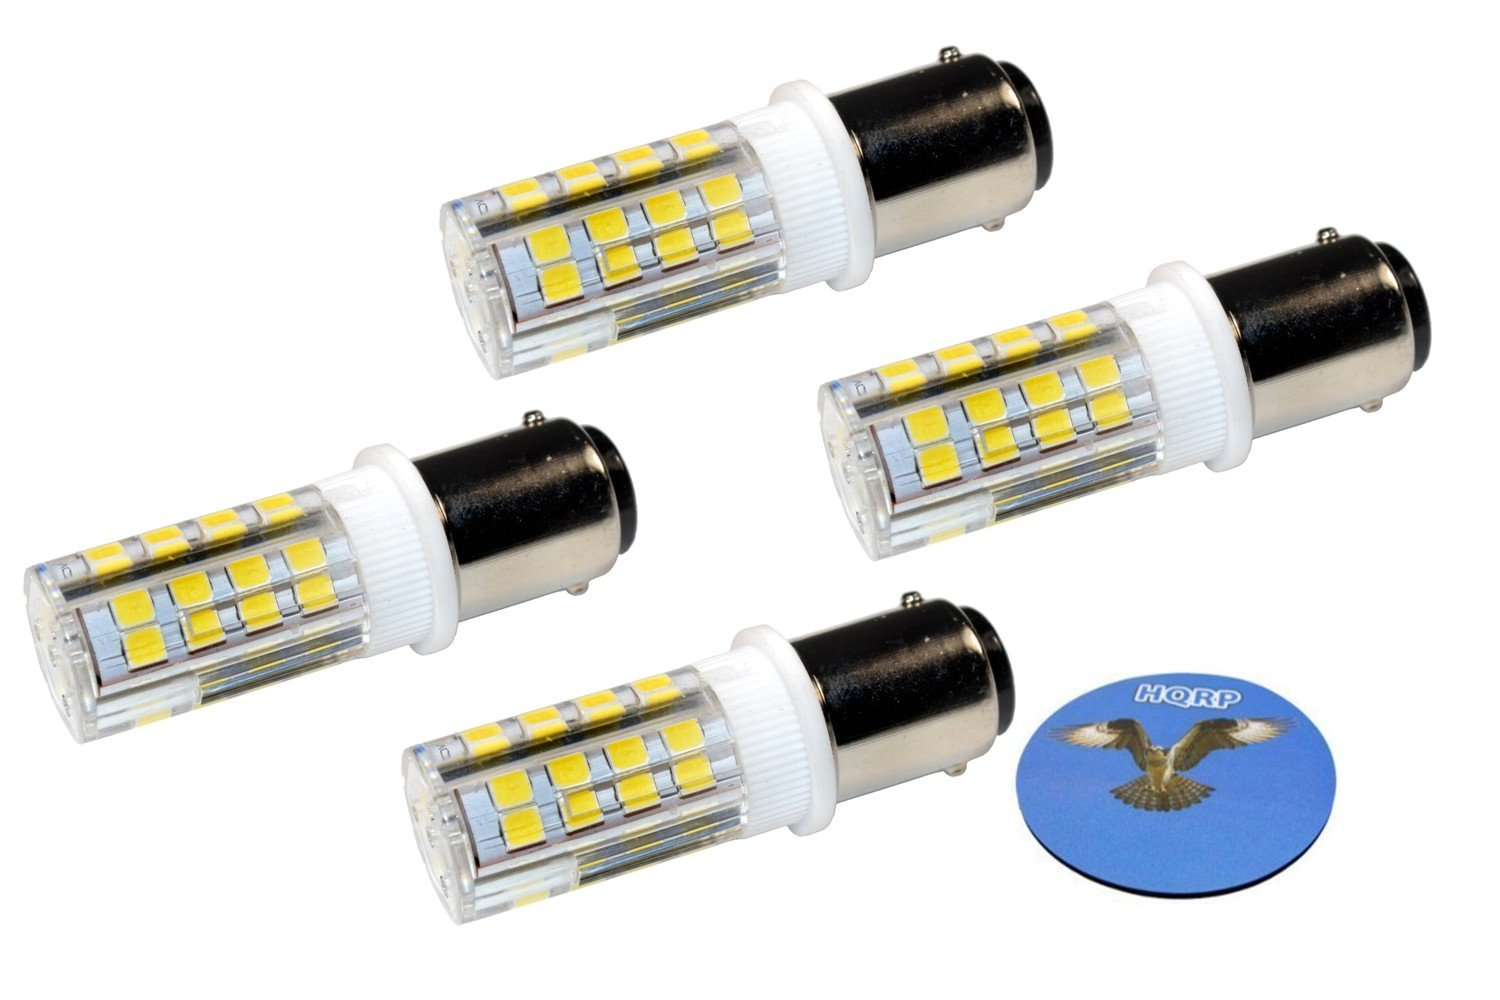 HQRP 4-Pack Sewing Machine LED Light Bulb for Janome (Newhome) 108 134D 204D 659 1004 1612 1622 1814 1818 1822 3125 3434D MC4018 My Excel 4023 MX3123 TB-12 plus HQRP Coaster